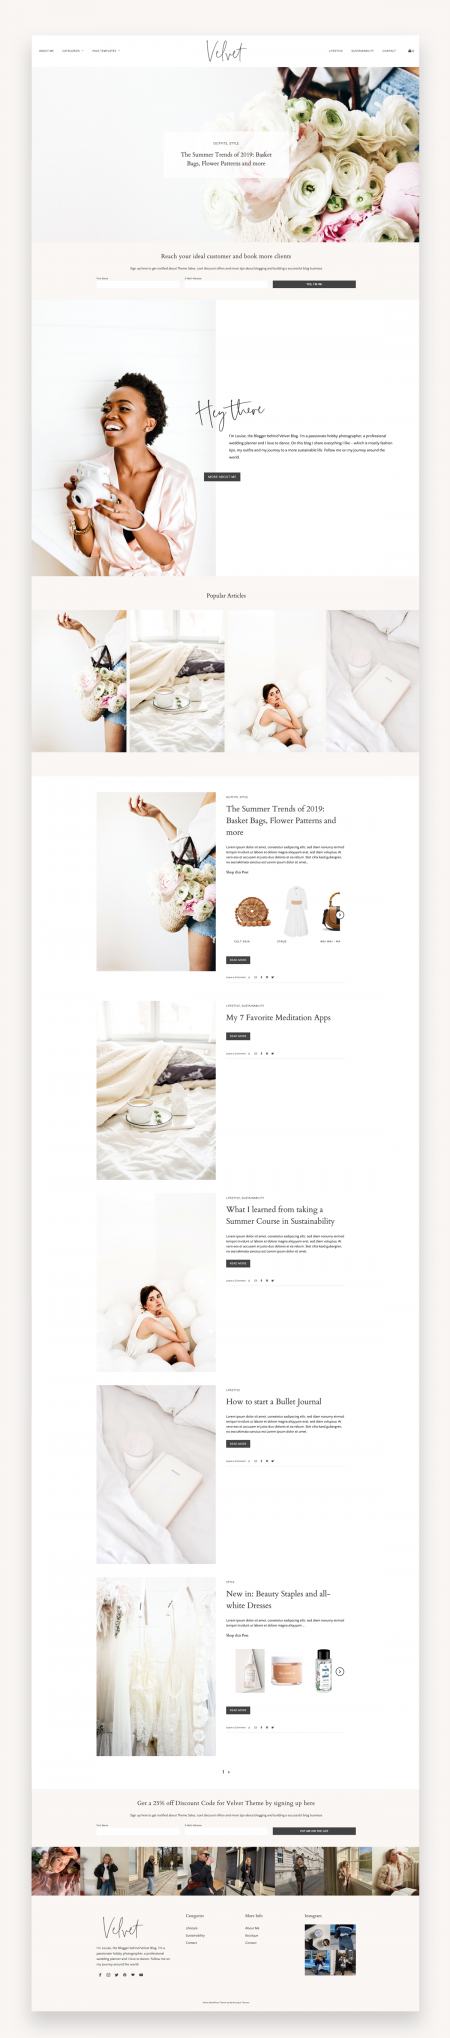 Modern Blog & Shop Theme - Velvet